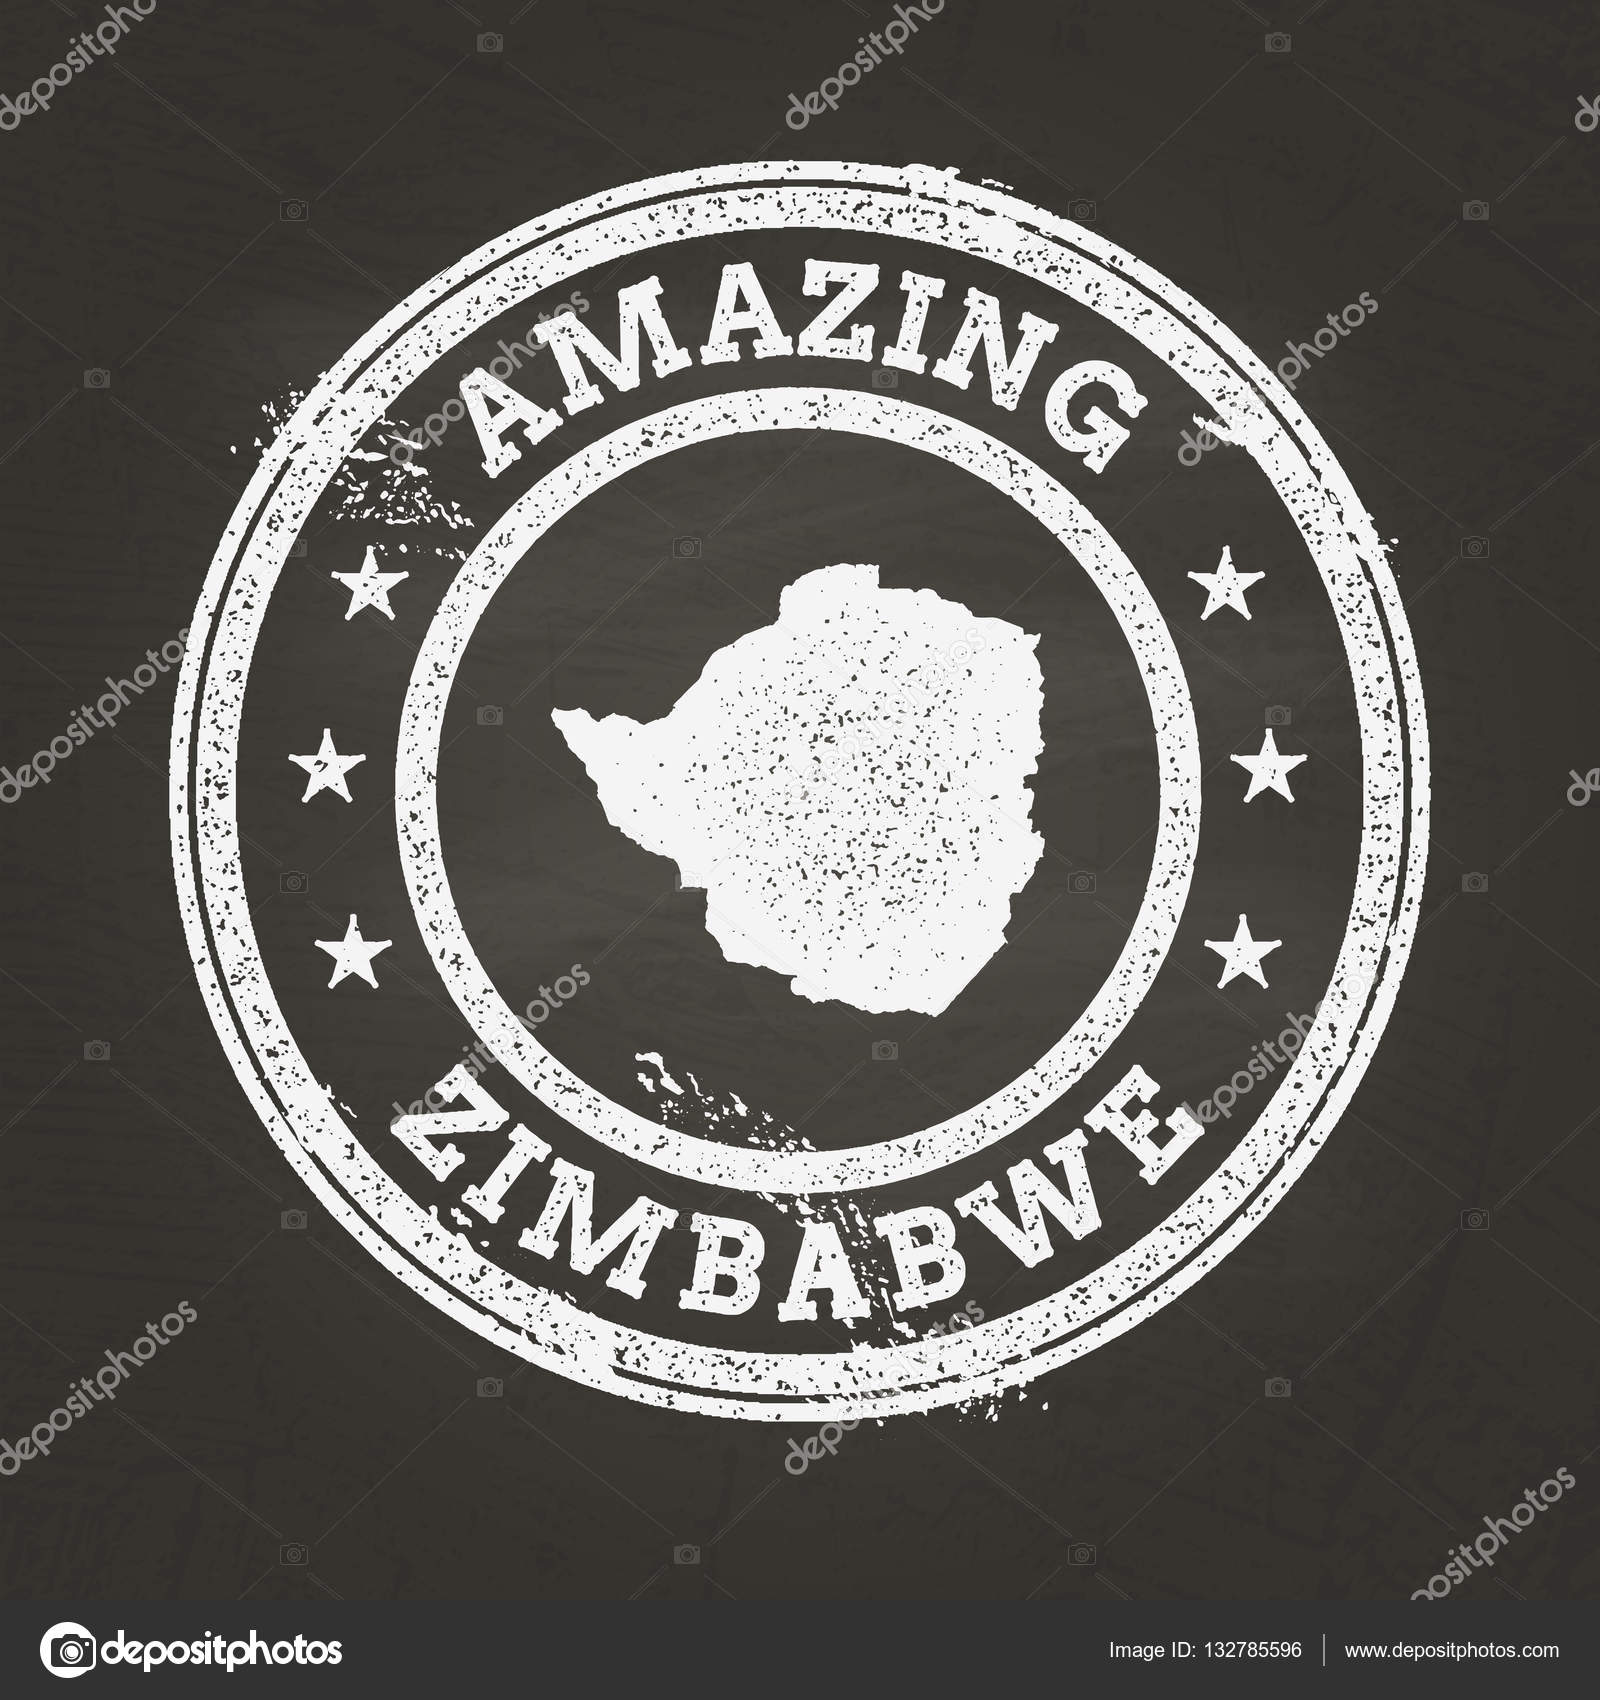 White Chalk Texture Vintage Stamp With Republic Of Zimbabwe Map On - Republic of zimbabwe map